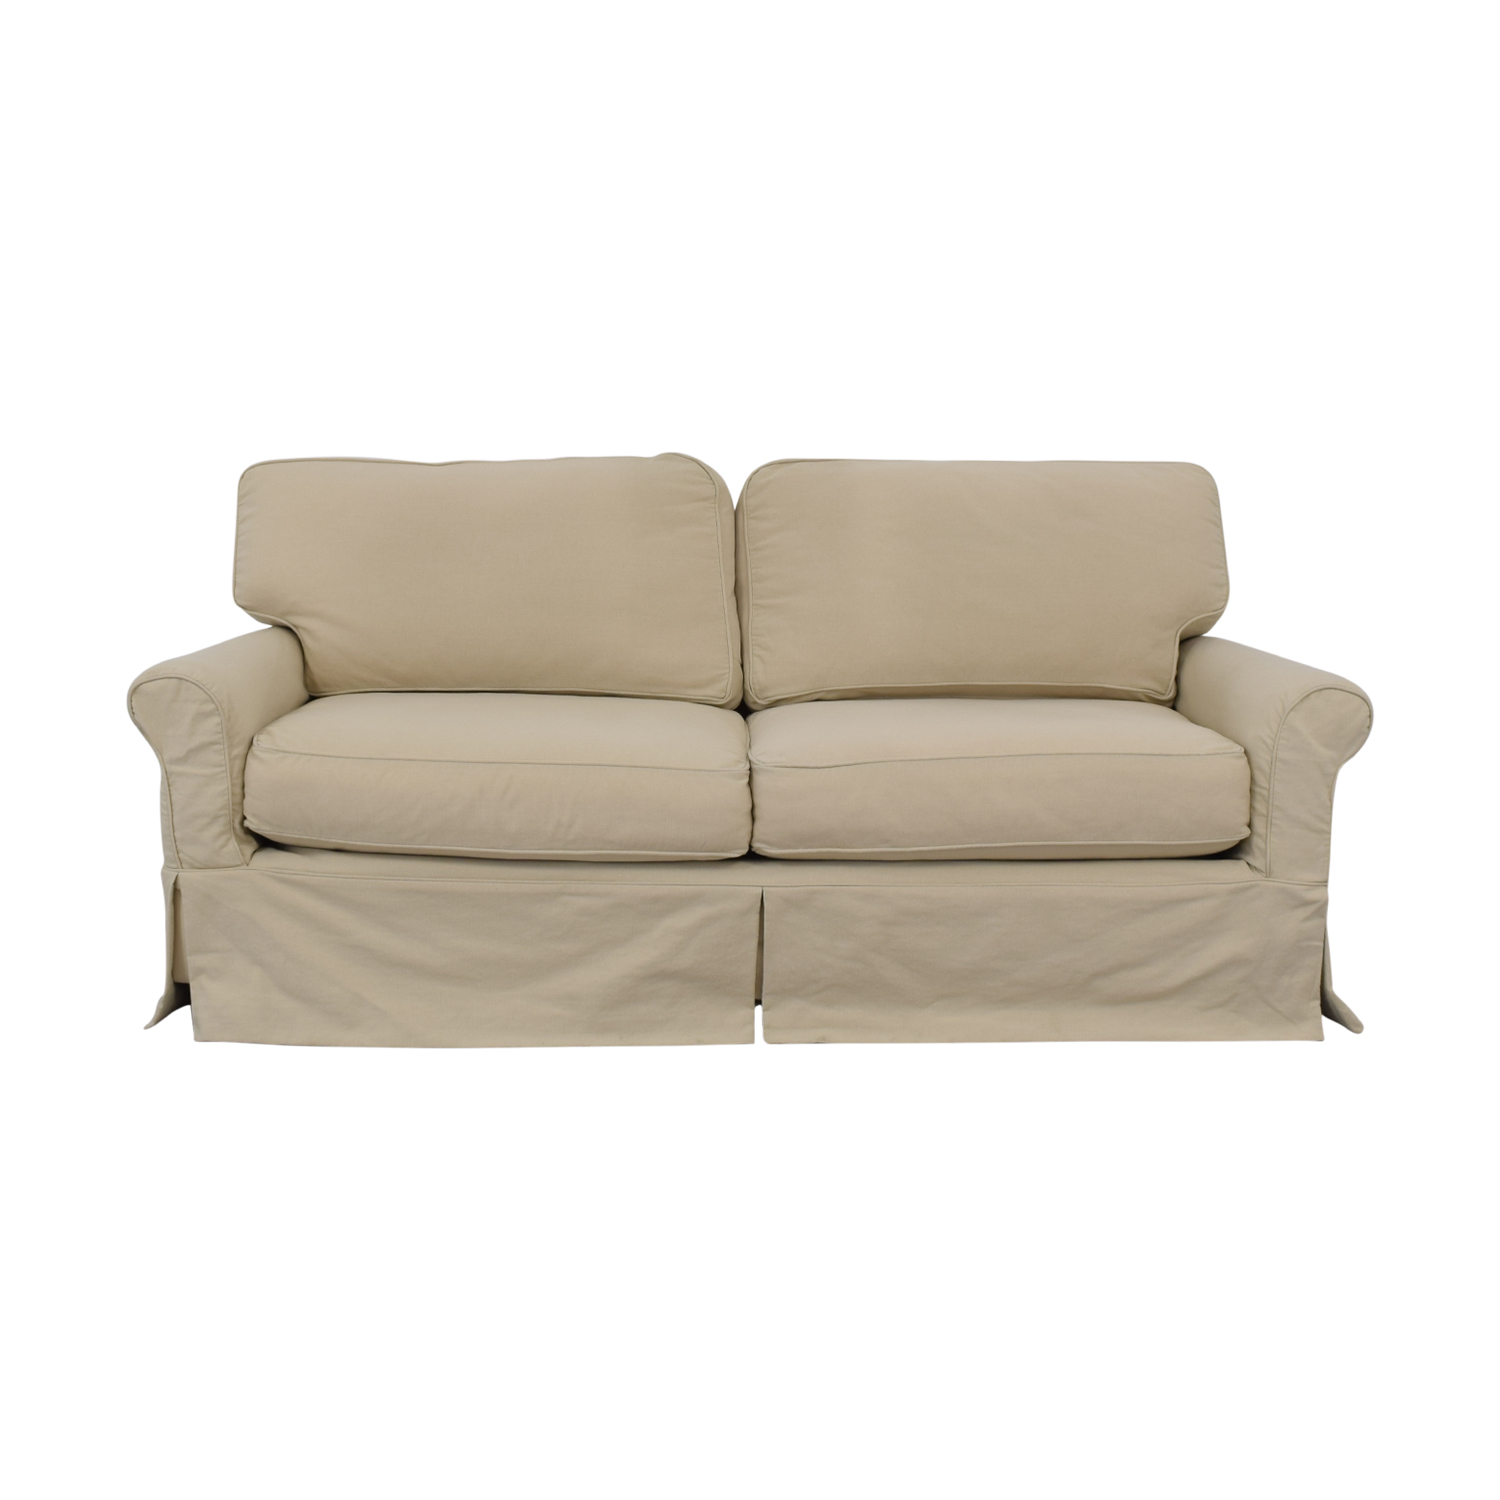 Crate & Barrel Crate & Barrel Bayside Sofa for sale